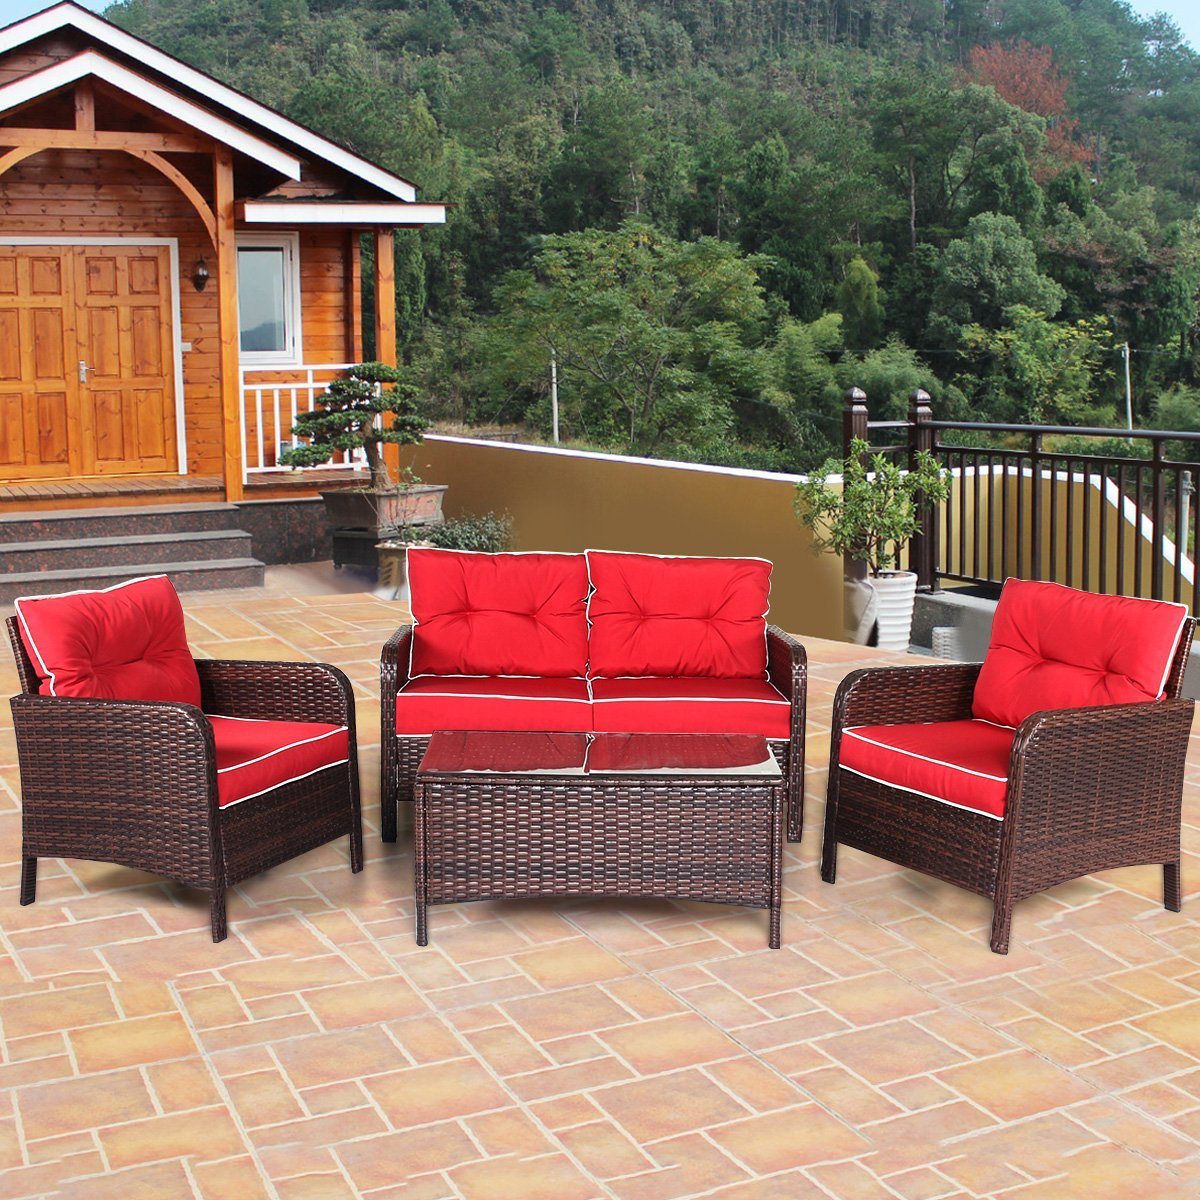 Tangkula 4 Piece Outdoor Furniture Set Patio Garden Outdoor Wicker Conversation Set (Red)